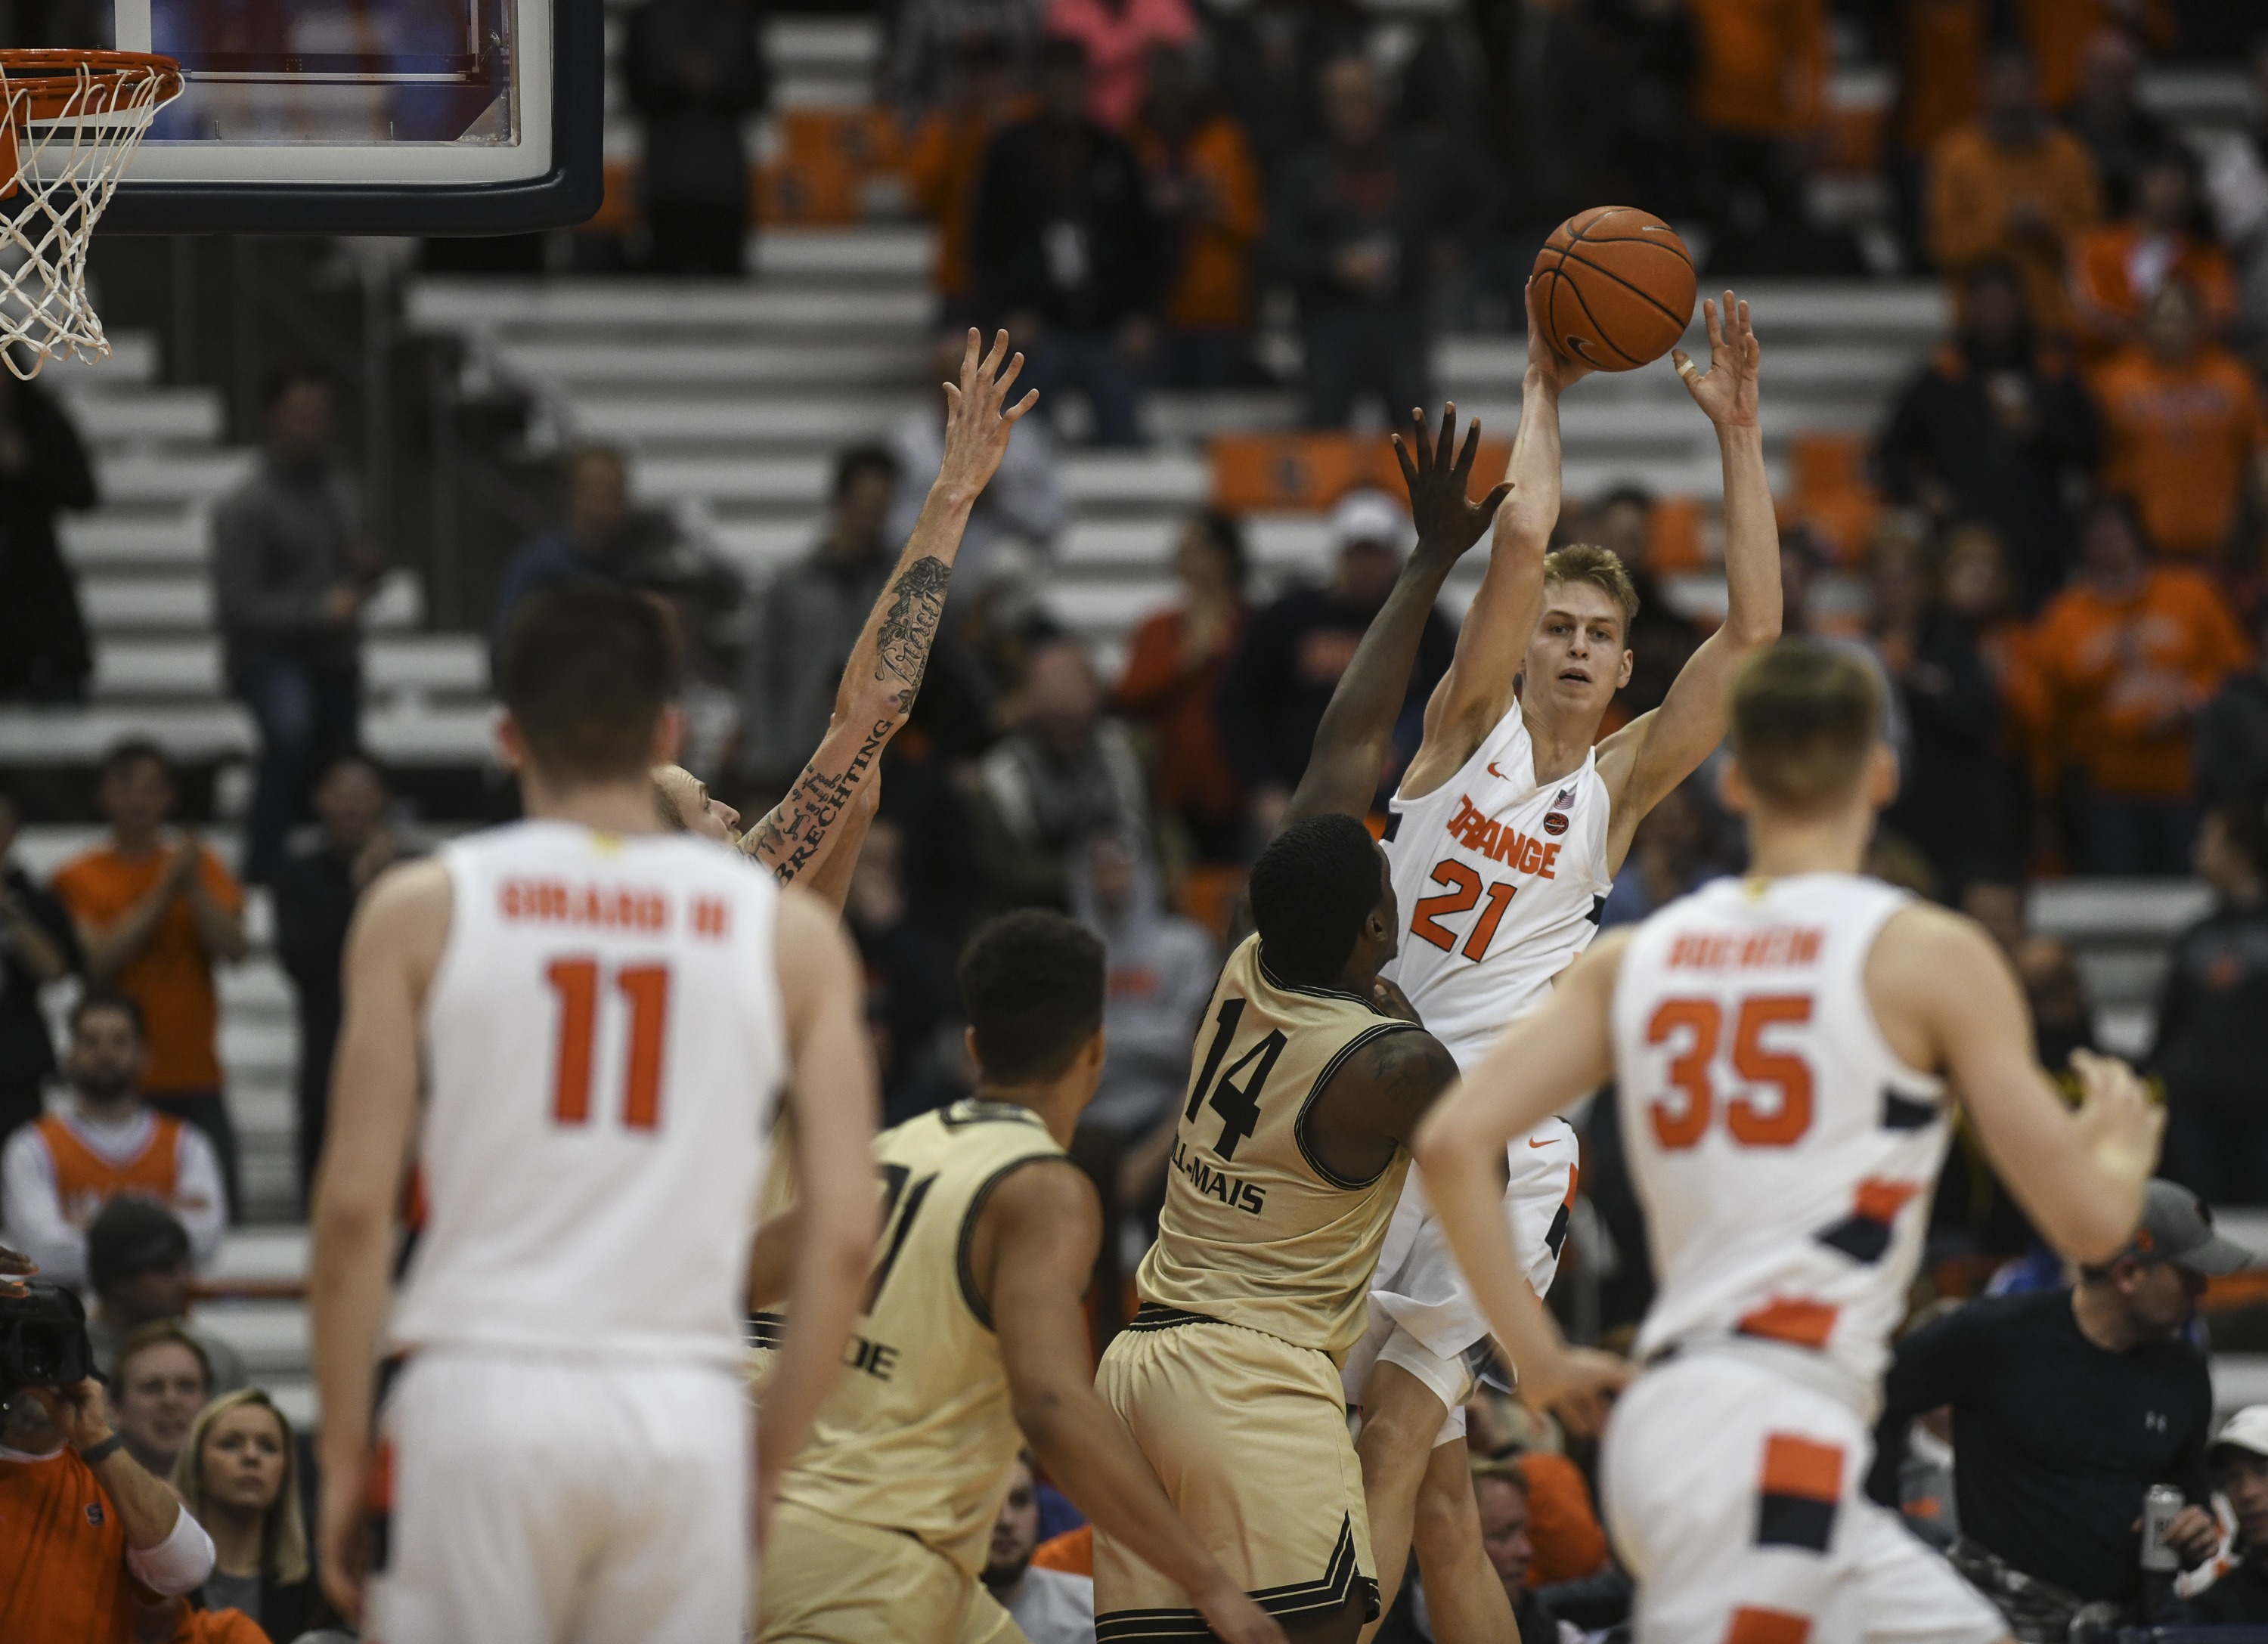 Syracuse Basketball vs. Oakland - Marek Dolezaj passes the ball back to Buddy Boeheim